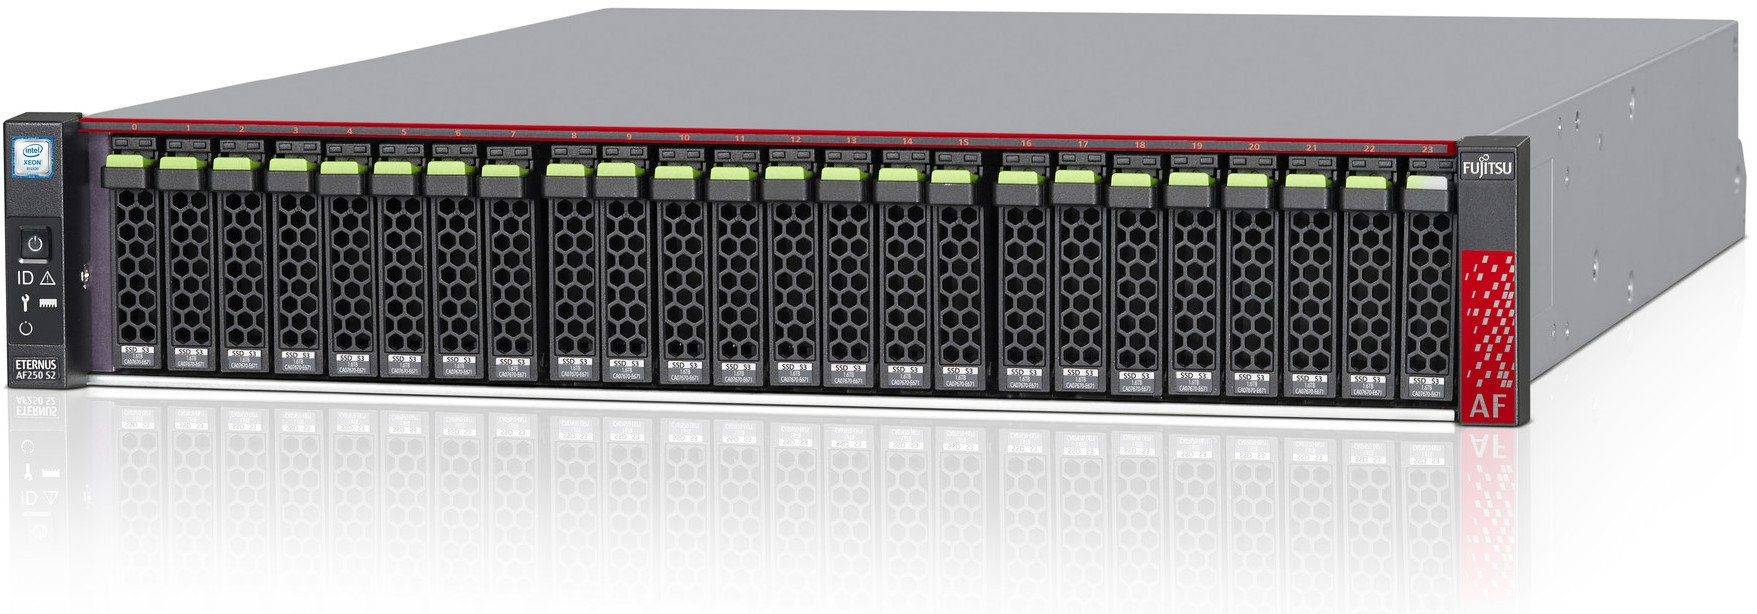 Fujitsu ETERNUS AF250 S2 All-Flash Array Right Side